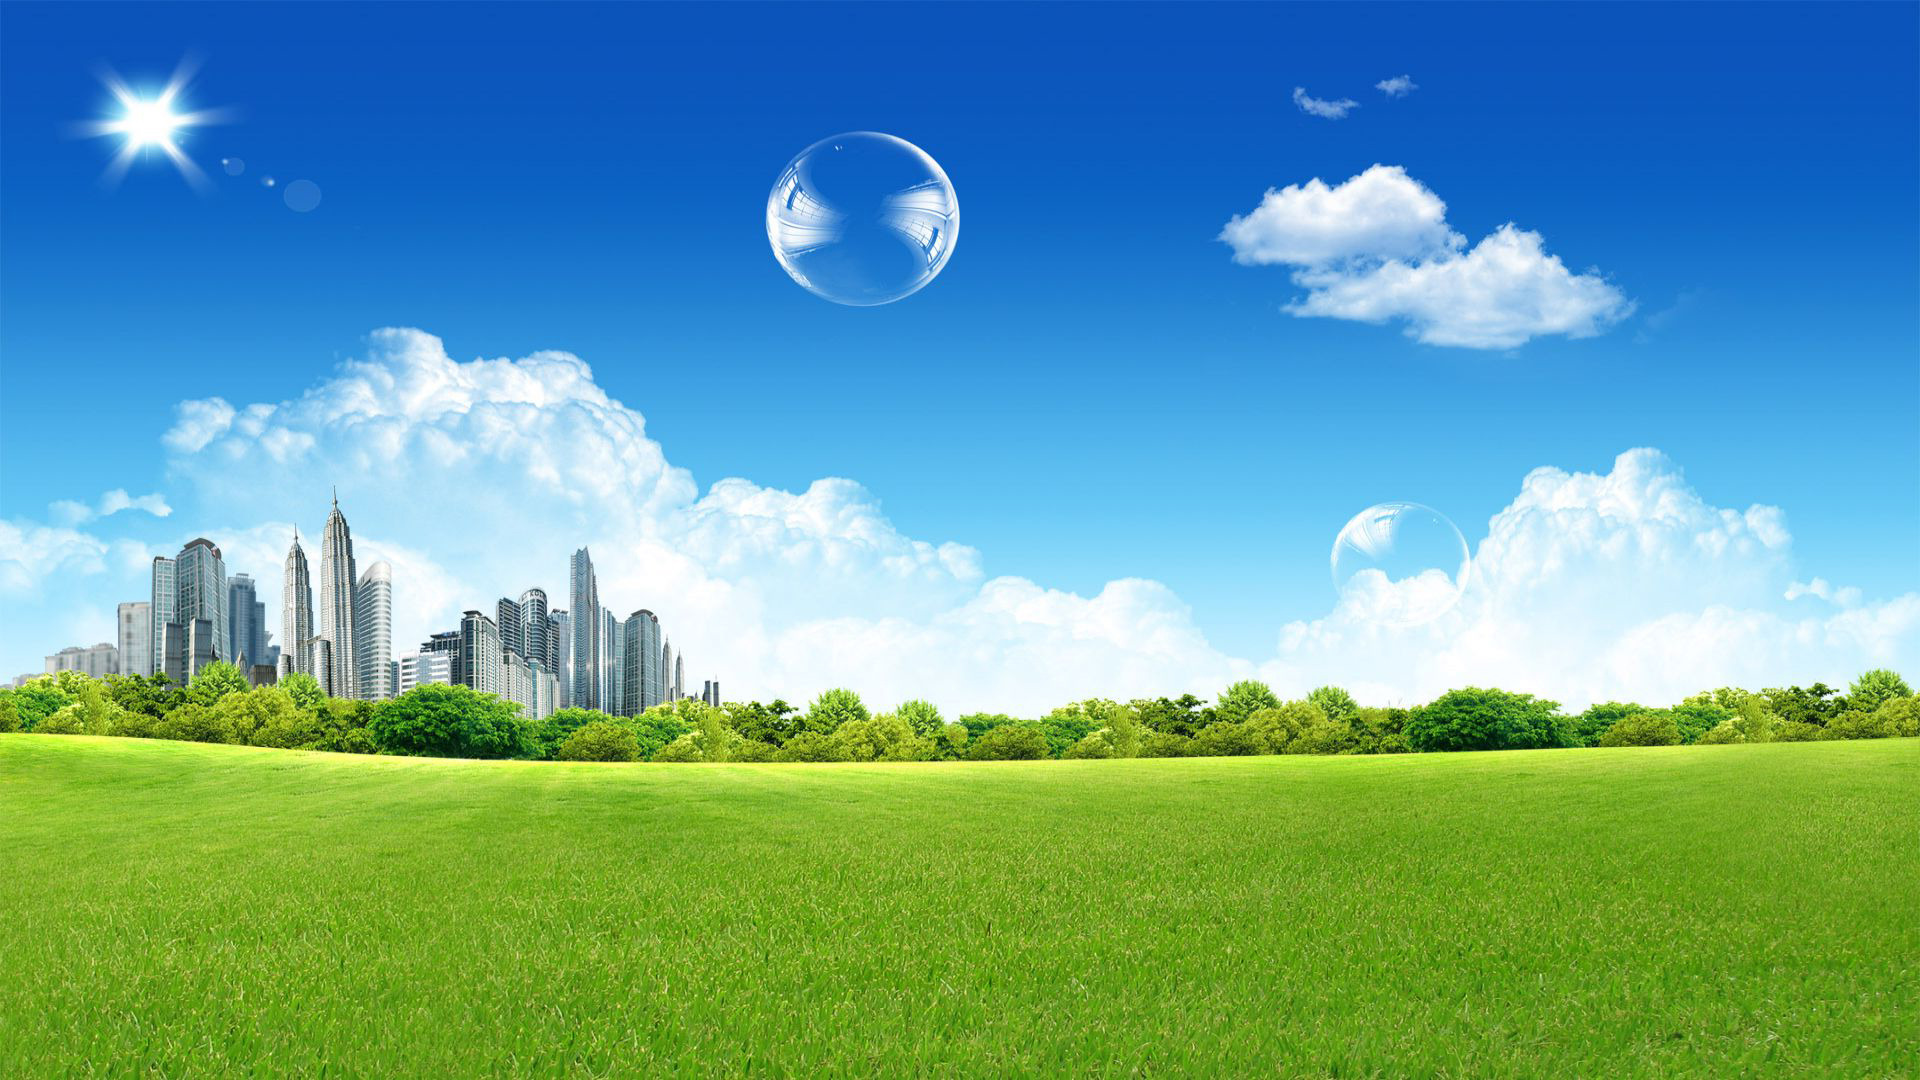 green-city-wallpaper-1 | Total Fire Protection Specialist